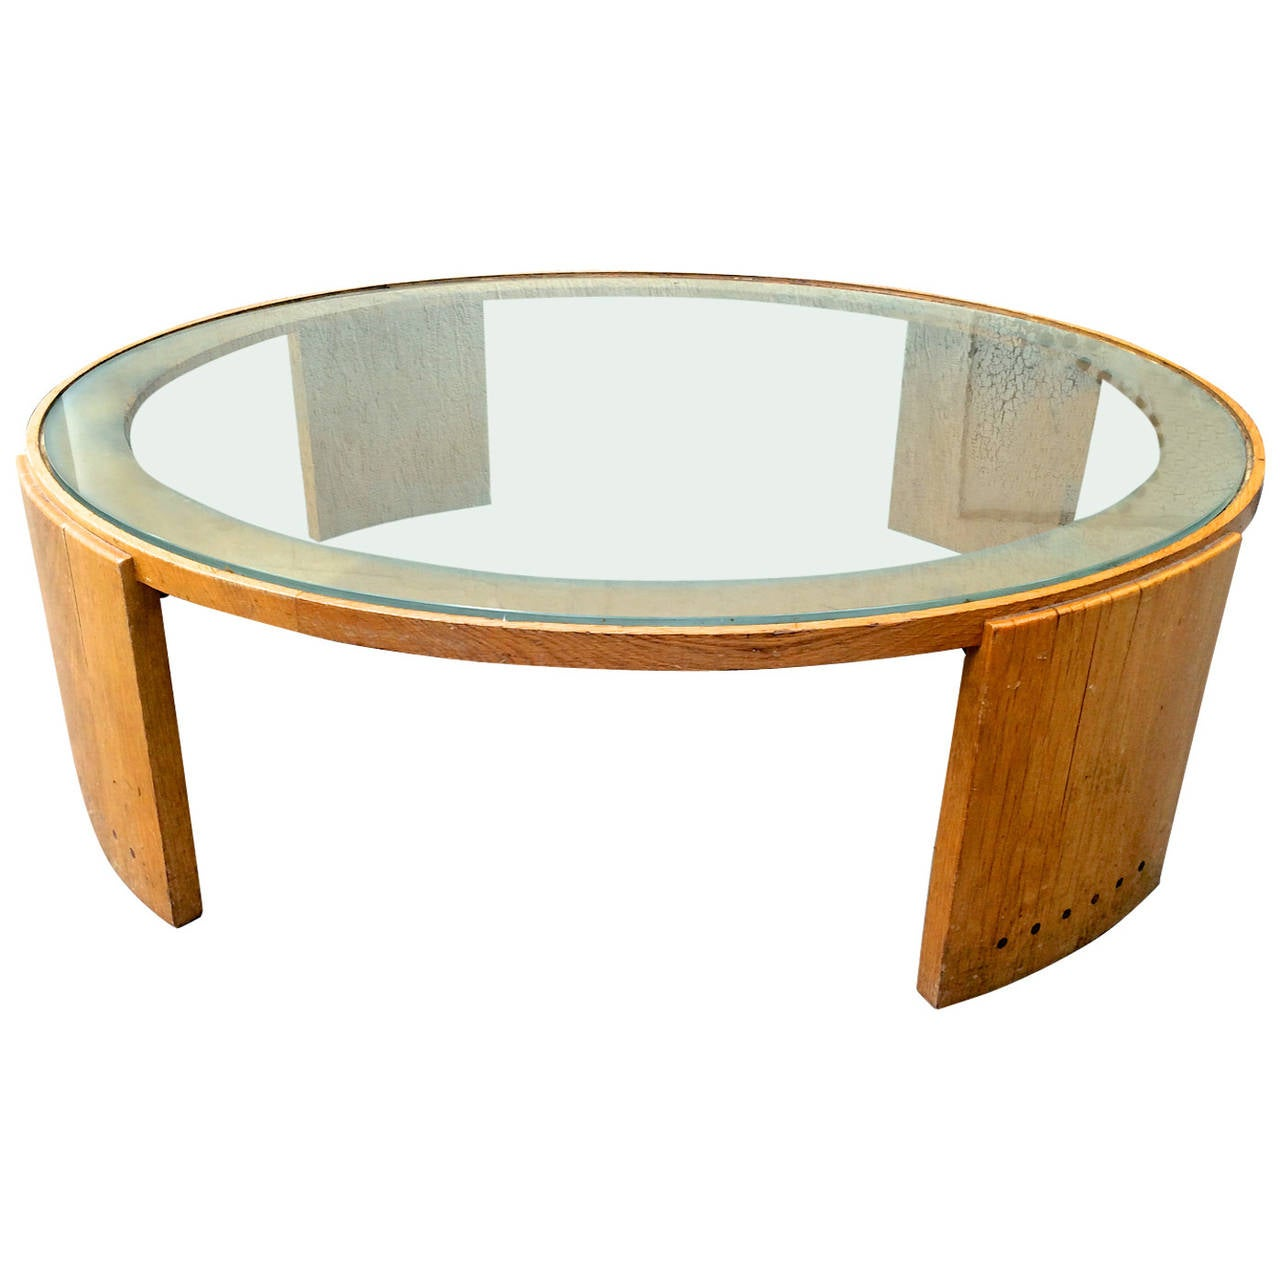 Jacques adnet very large round coffee table in oak and glass top at 1stdibs Large glass coffee table